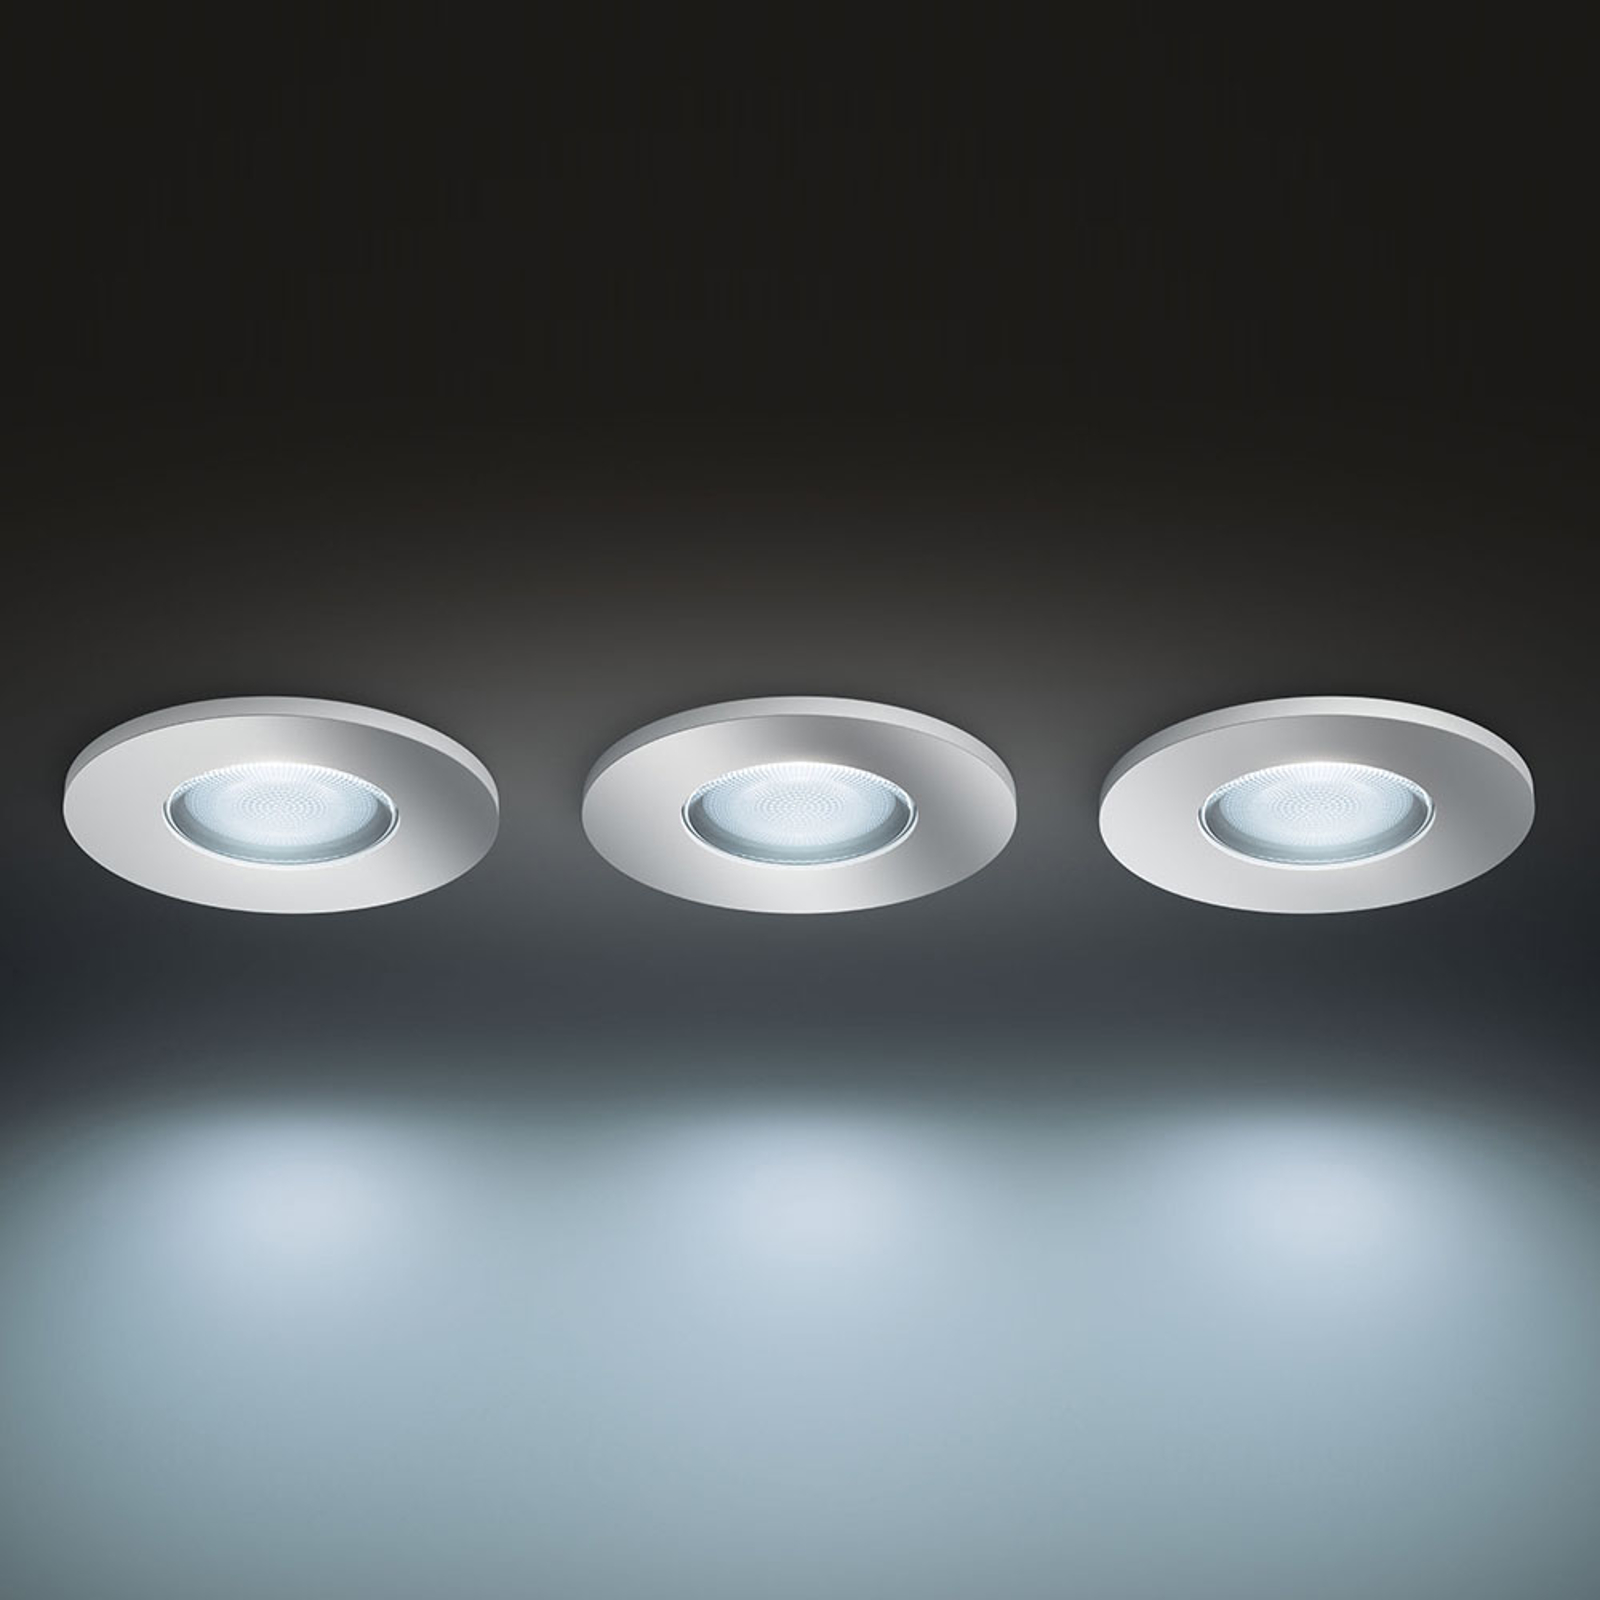 Philips Hue white Ambiance Adore inbouwspot, per 3